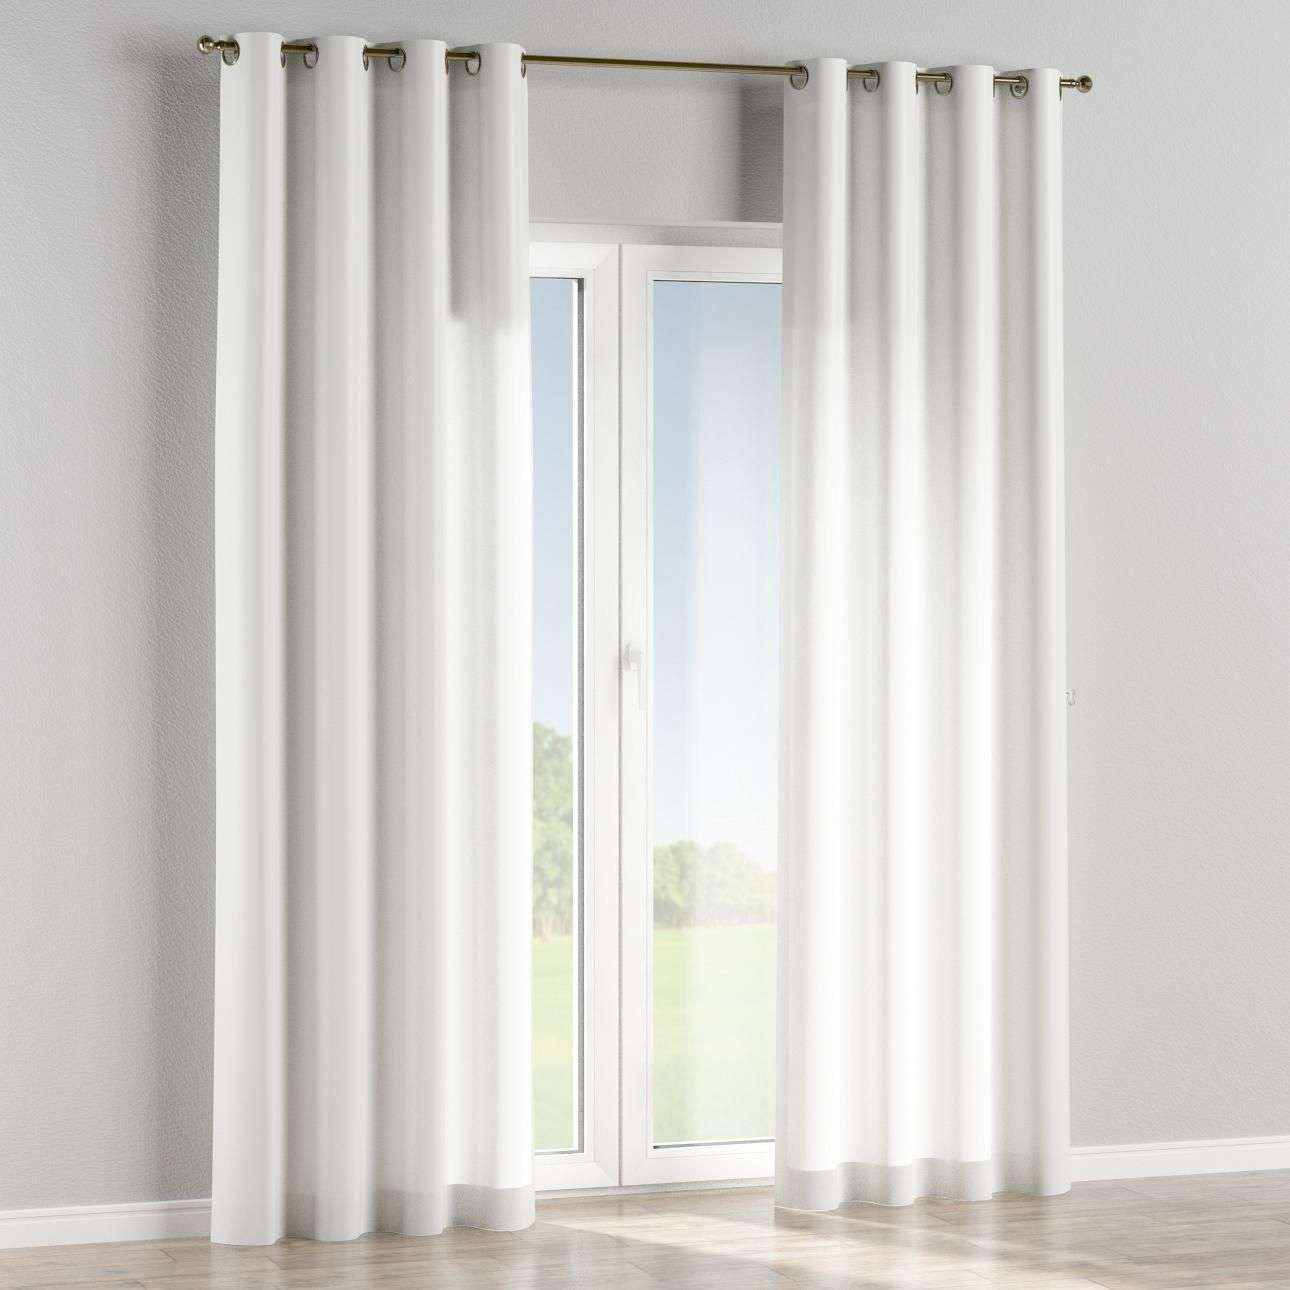 Eyelet lined curtains in collection Cardiff, fabric: 136-26